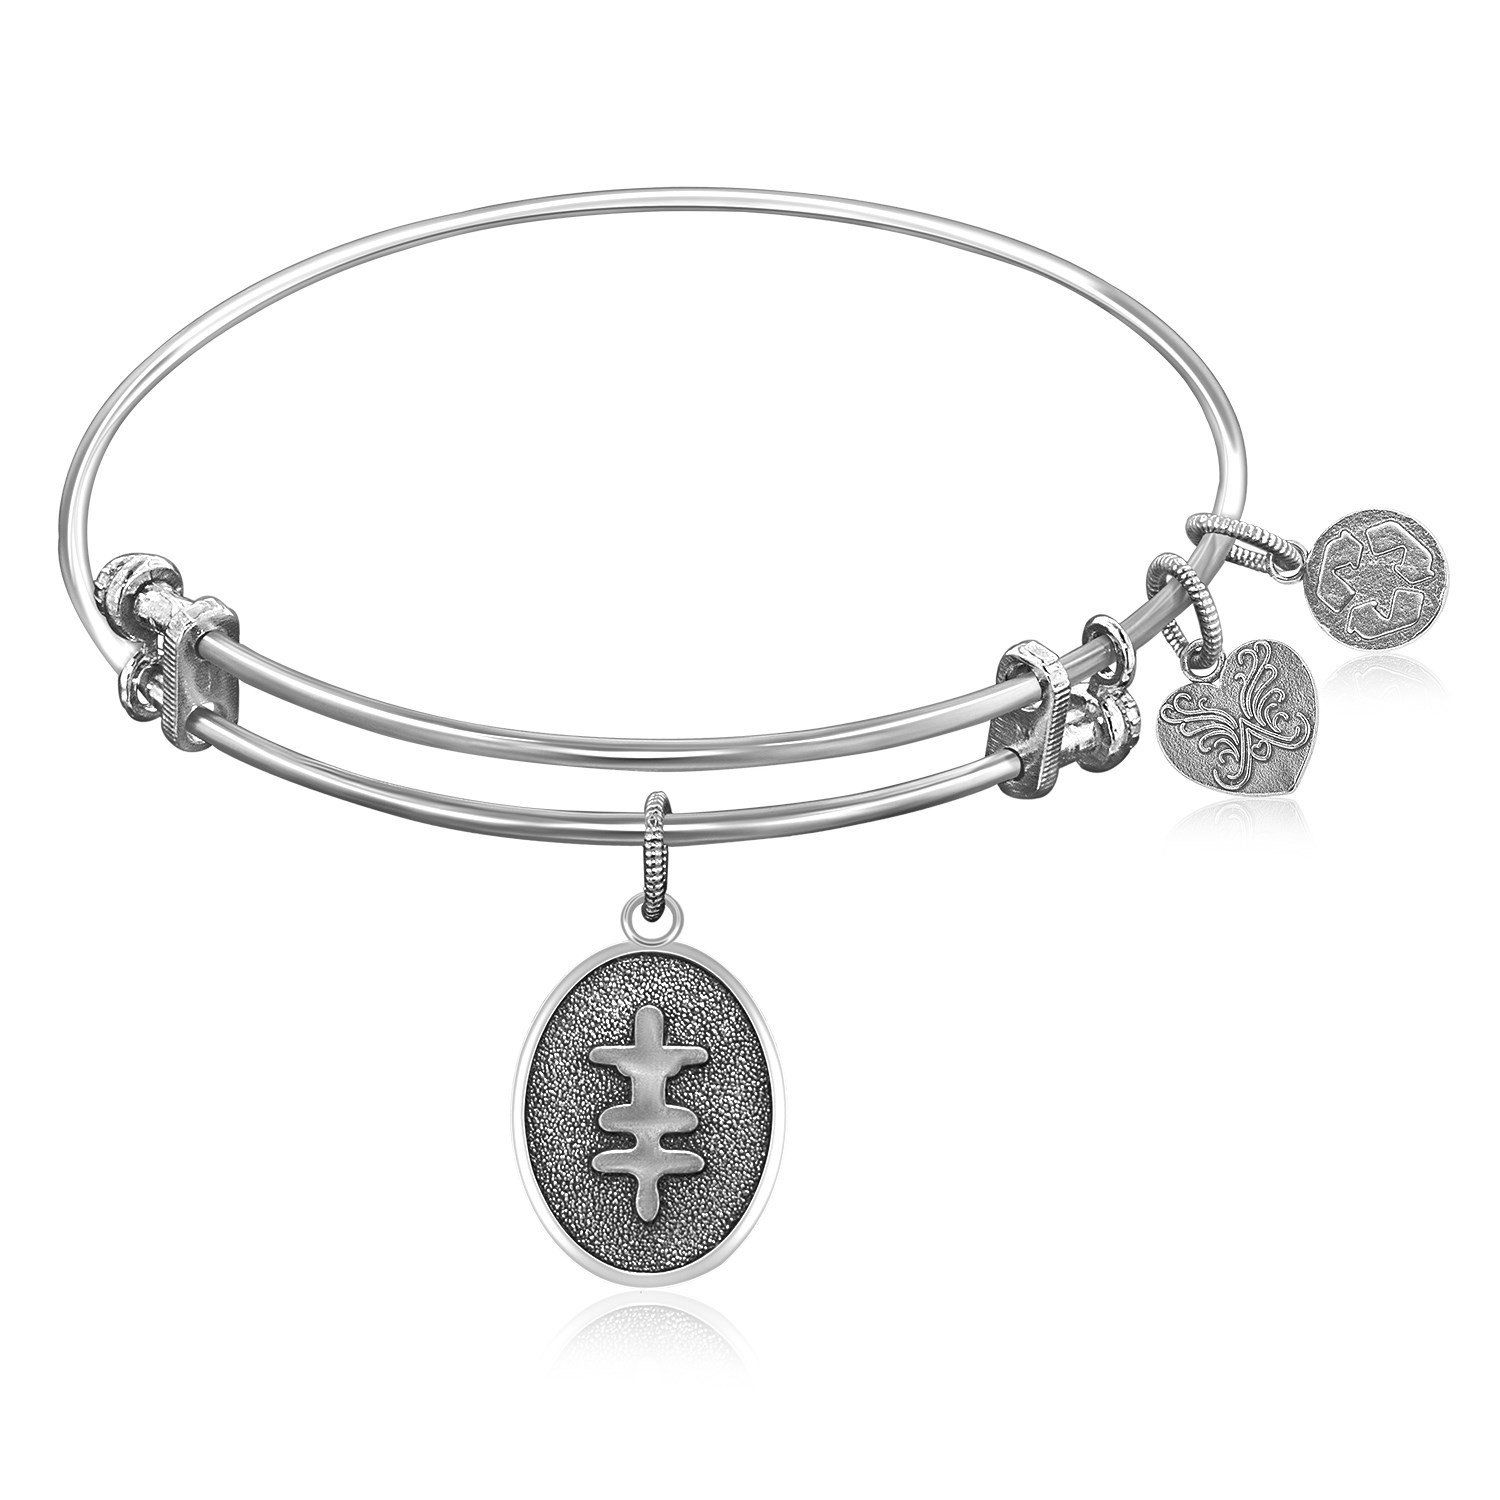 Expandable Bangle In White Tone Brass With The Eagle